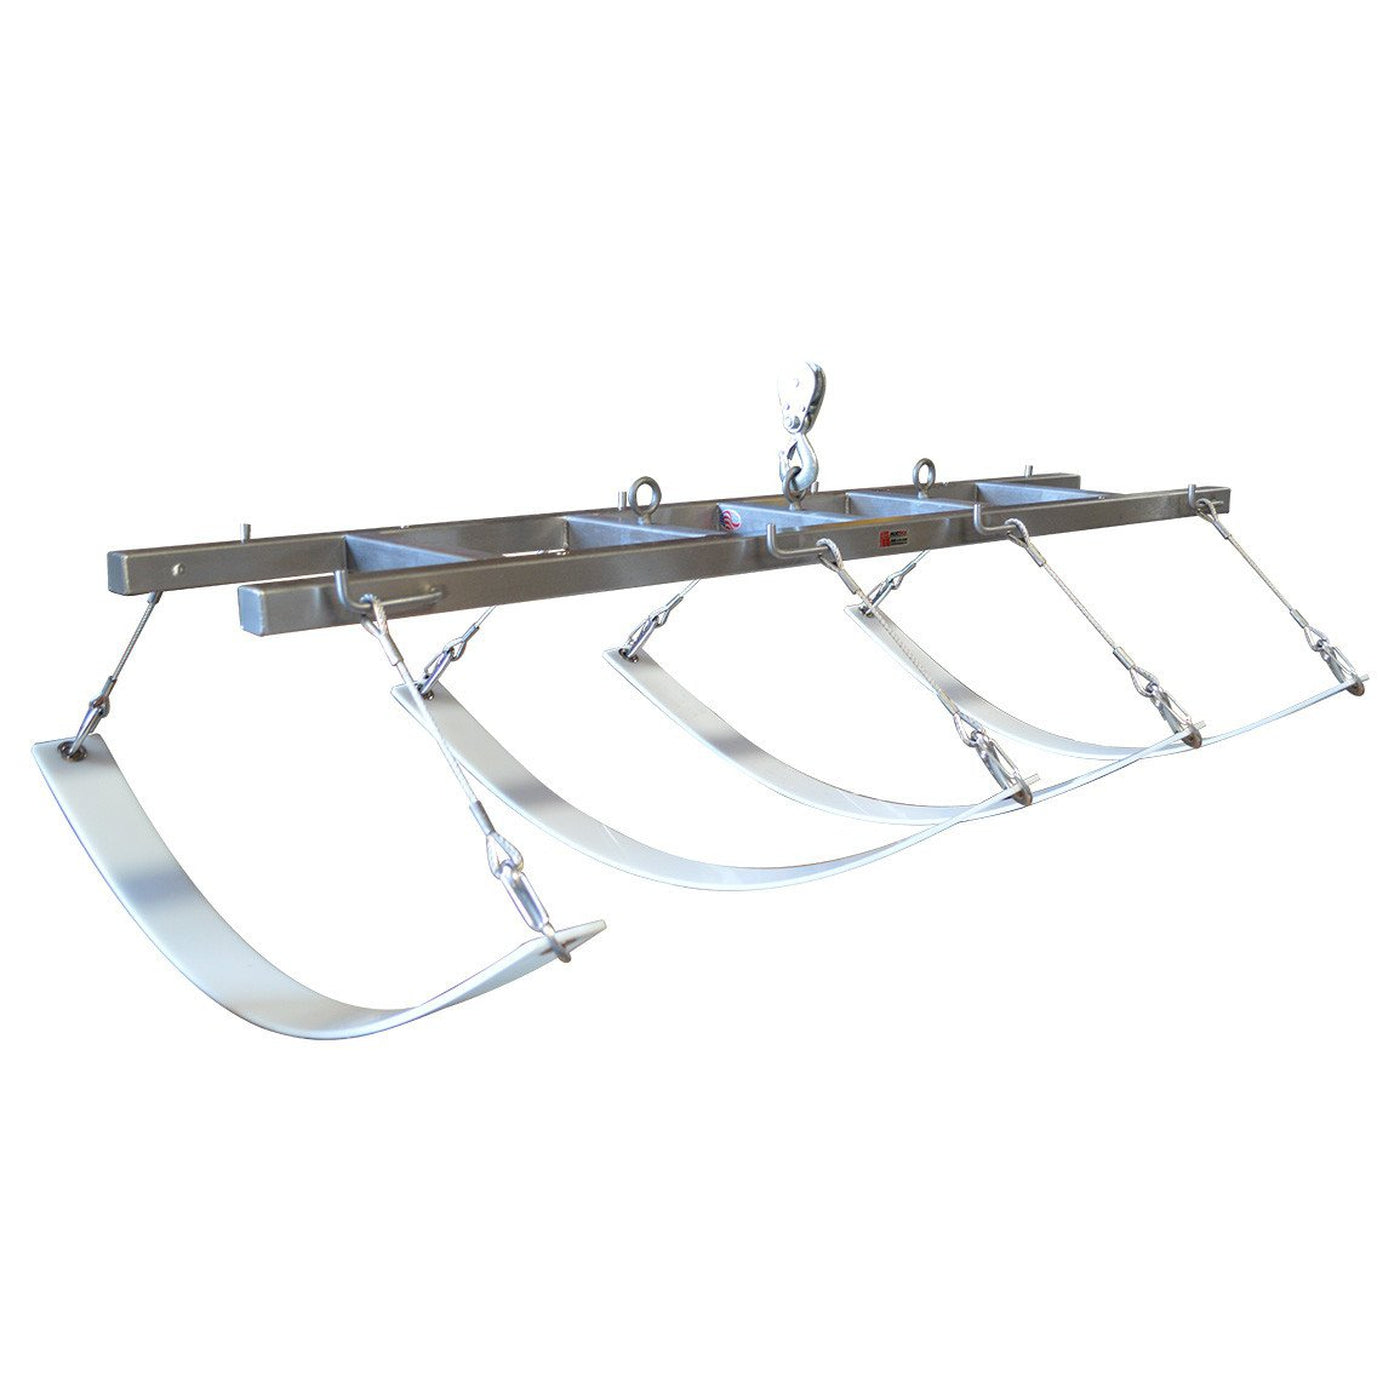 Adjustable Strap Lift Assembly with Rigid Body Strap-Cadaver Handling & Storage Systems-Mortech Manufacturing Company Inc. Quality Stainless Steel Autopsy, Morgue, Funeral Home, Necropsy, Veterinary / Anatomy, Dissection Equipment and Accessories